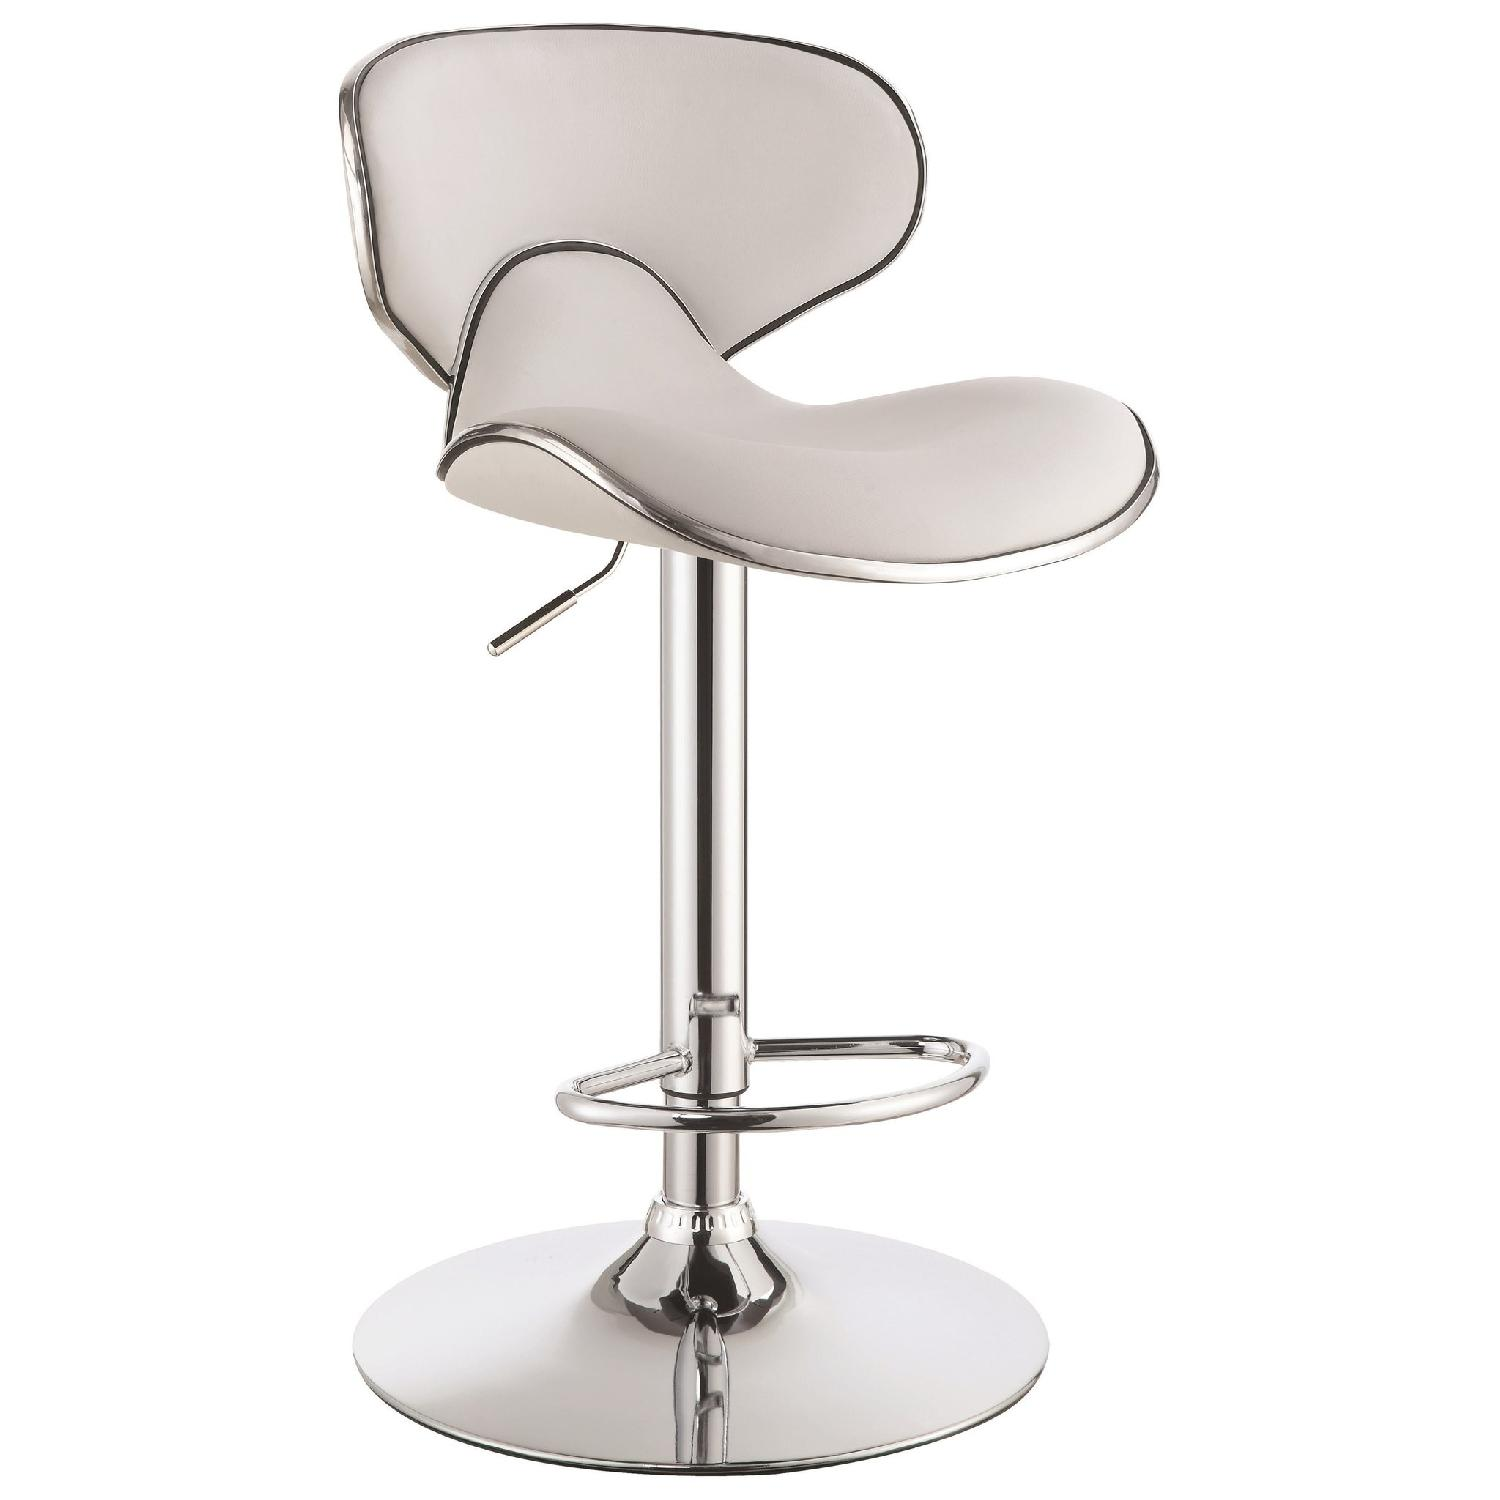 Adjustable White Seat Chrome Base Bar Stool